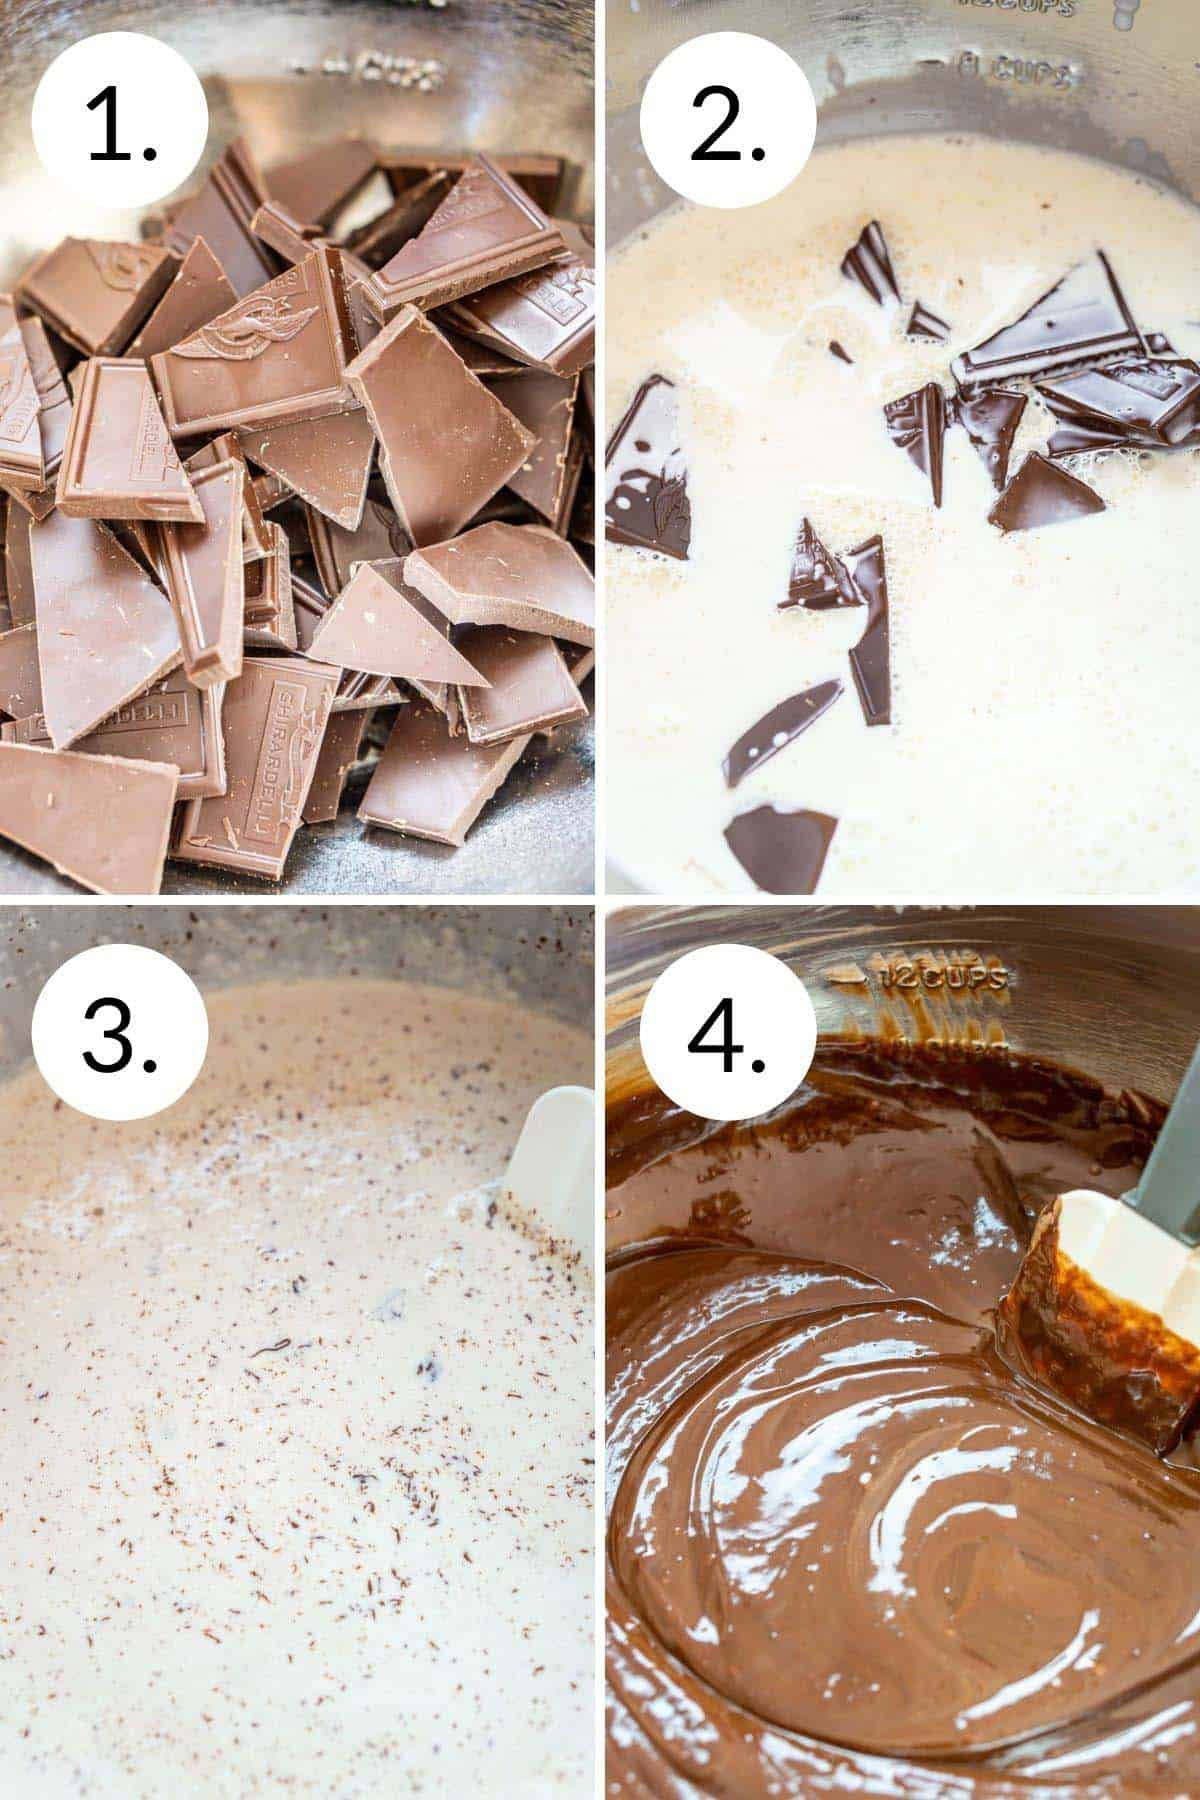 A collage showing the process of how to make the chocolate ganache frosting.